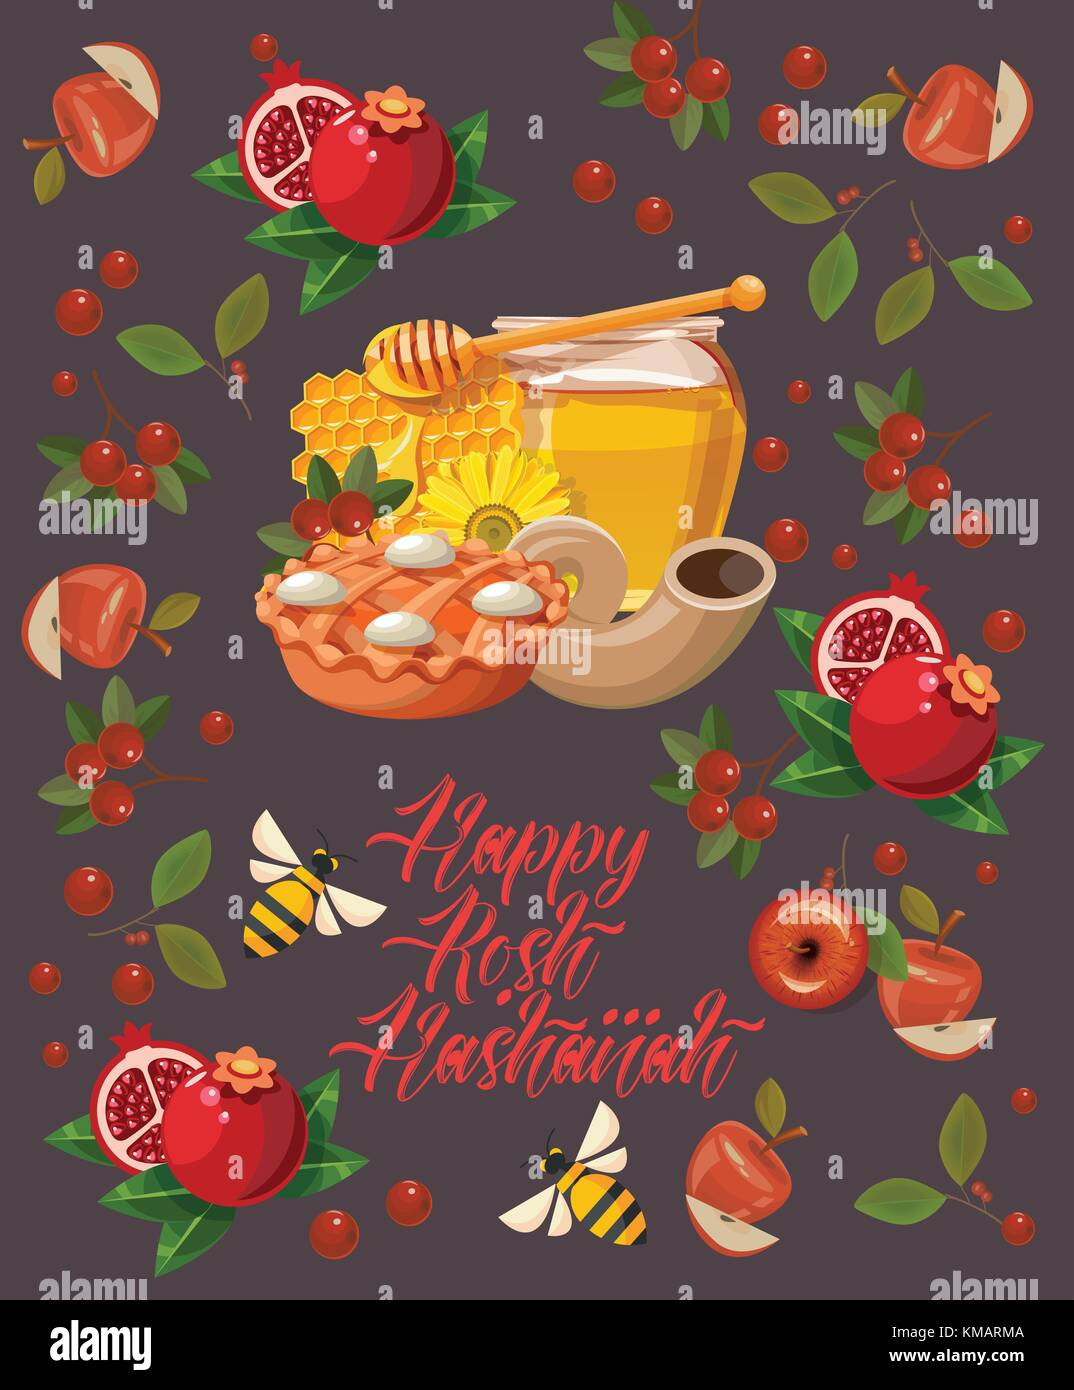 Happy rosh hashanah vector greeting card new year poster in modern happy rosh hashanah vector greeting card new year poster in modern style shana tova m4hsunfo